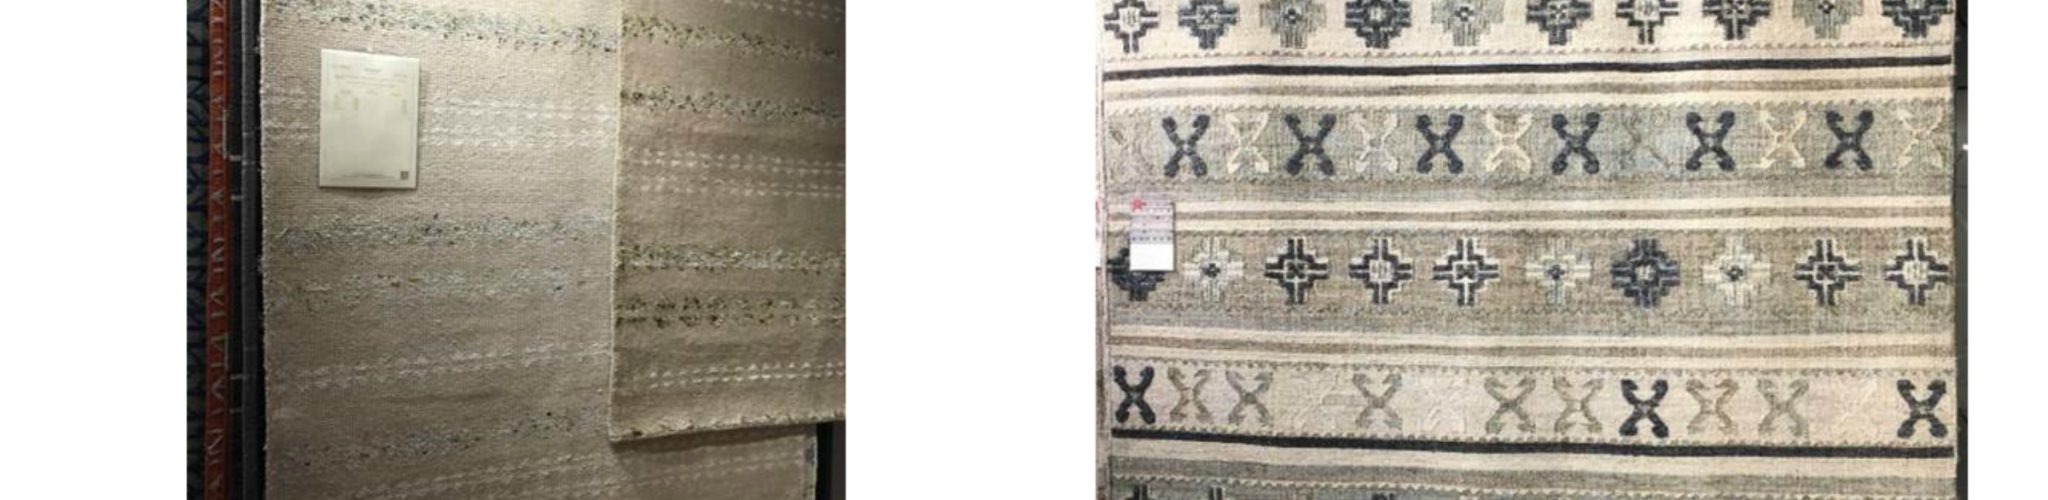 Rugs Collage 2